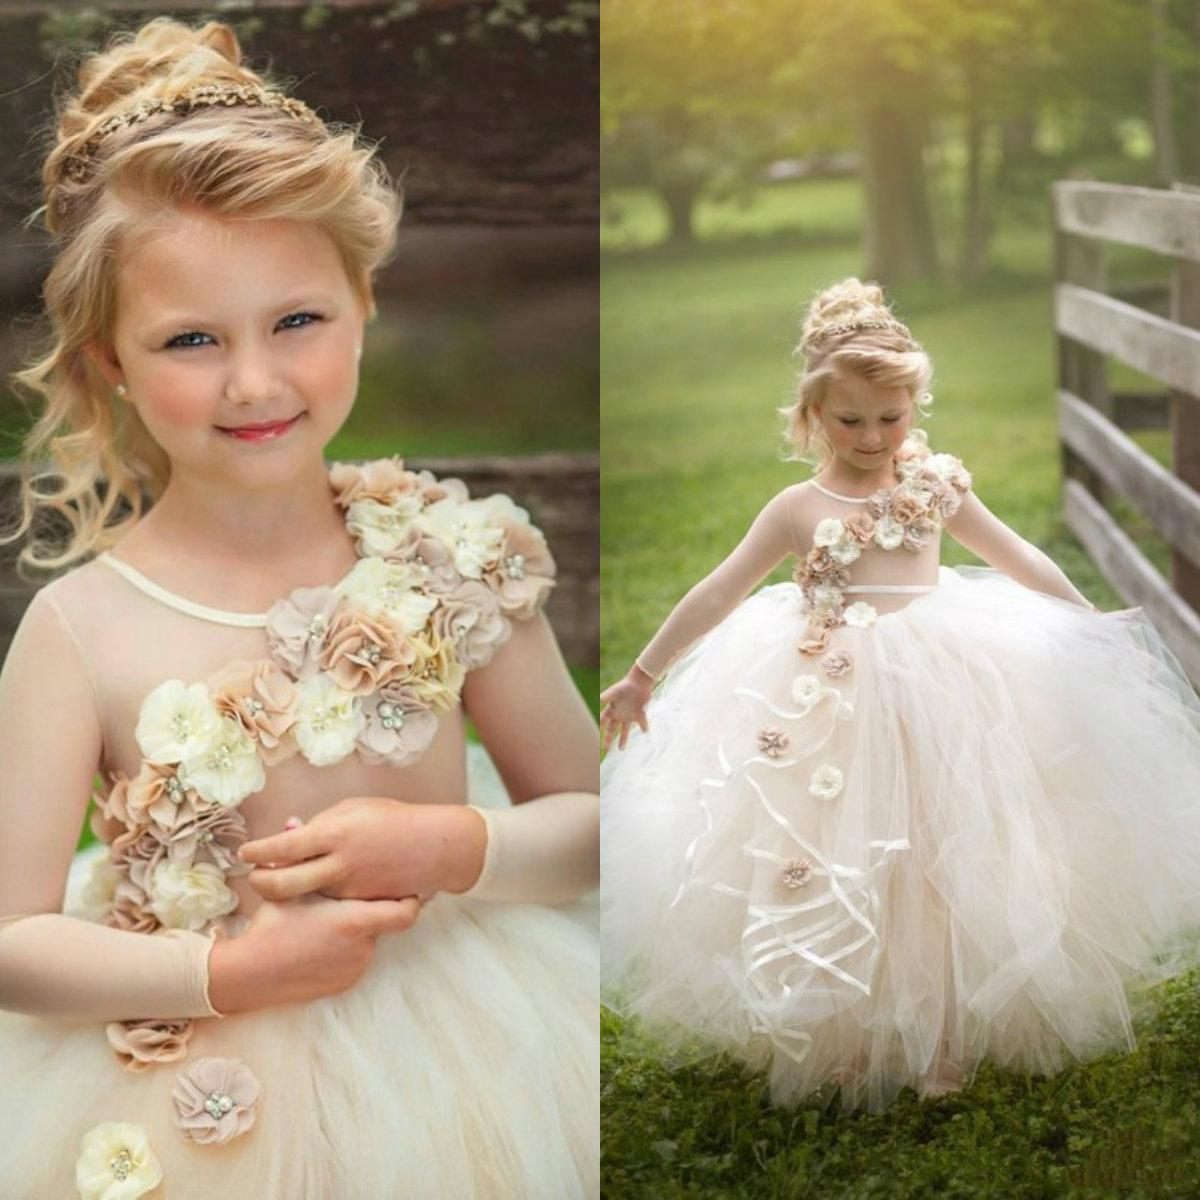 2019 Flower Girl Dresses Long Sleeve Hand Made Flowers Beaded Pearls Kids Ball Gowns Communion Pageant Formal Party Prom Dress Robes De Fête